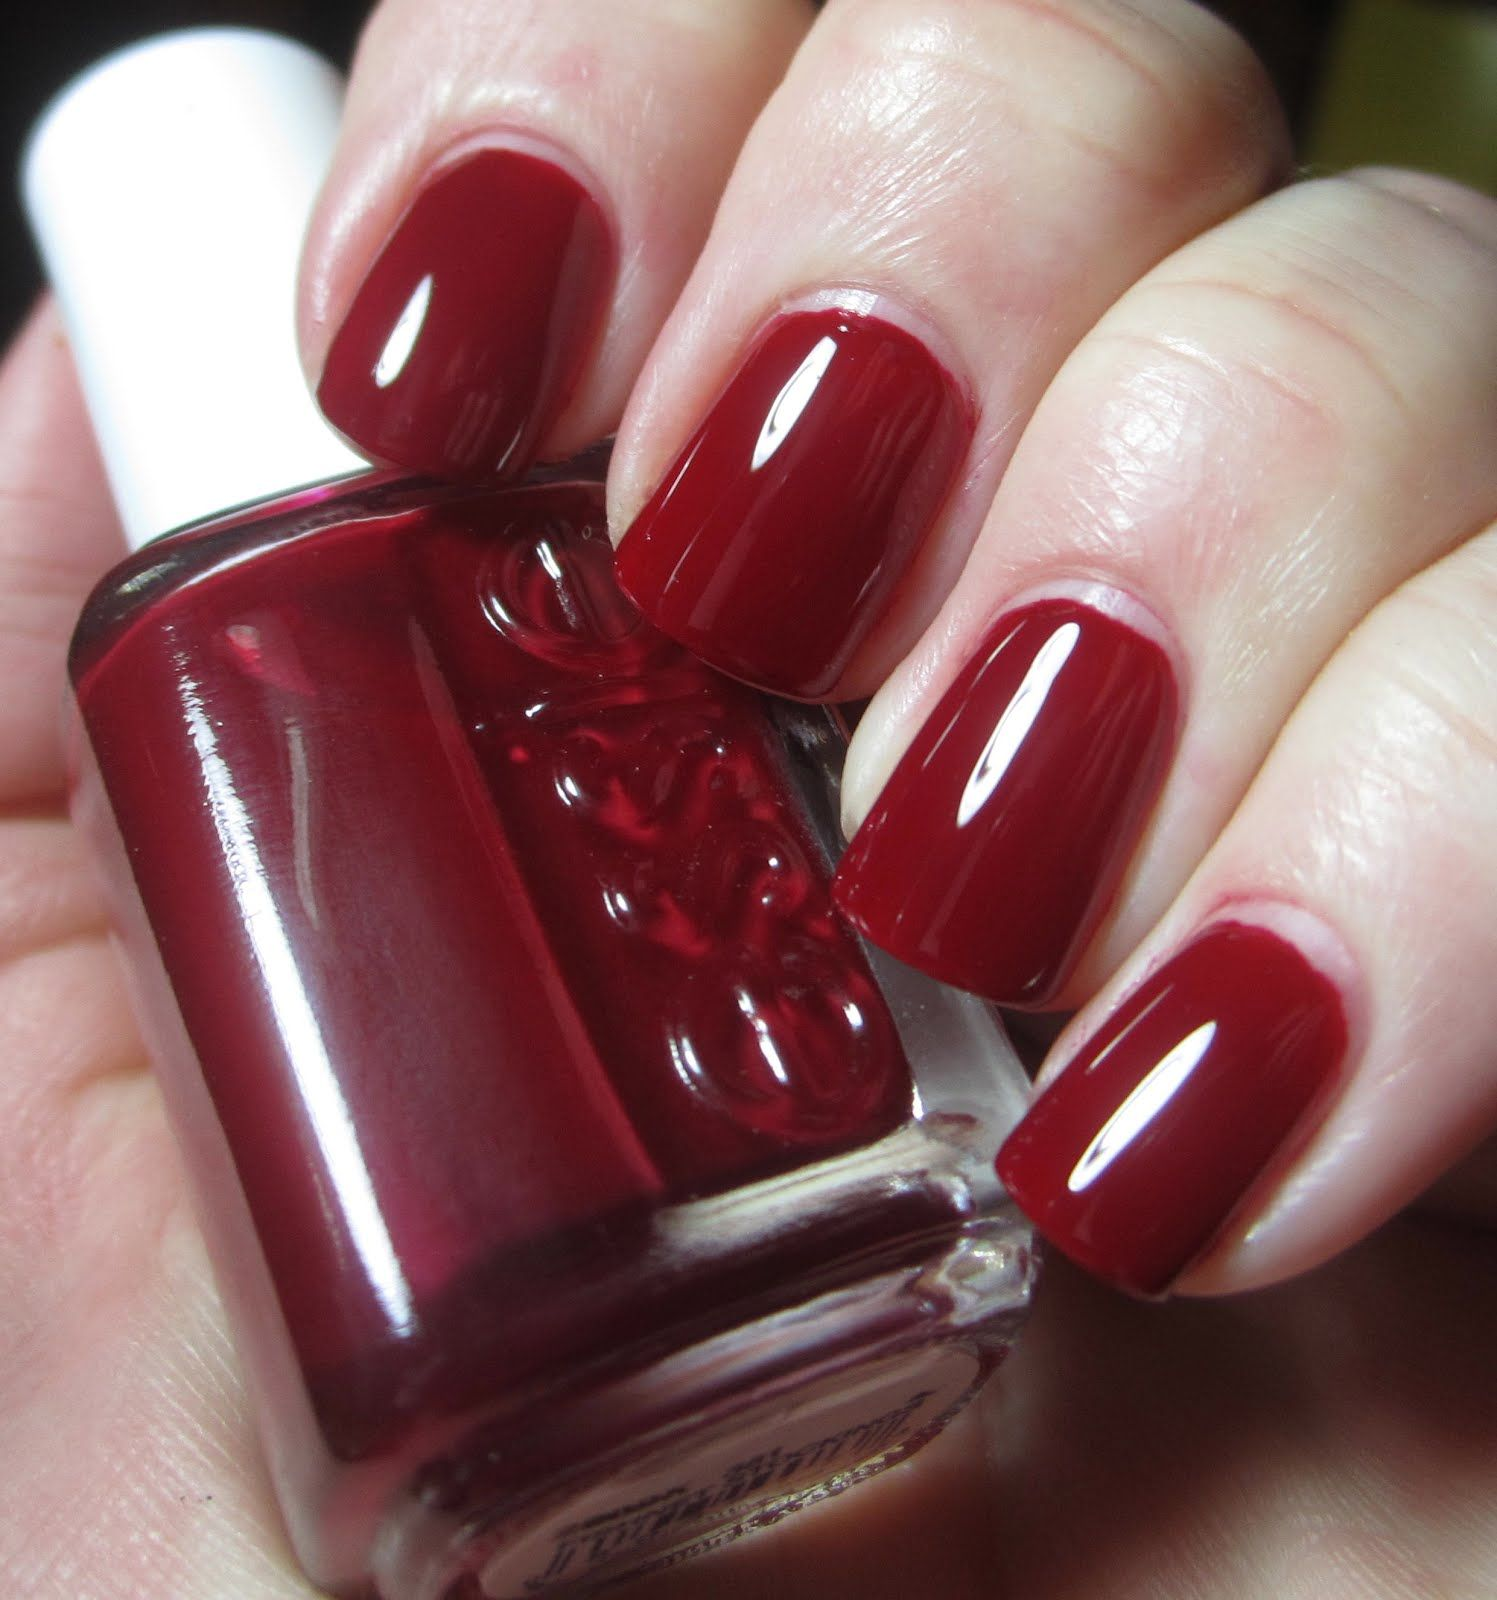 10 Best Red Nail Polishes (And Reviews) - 2018 Update | Essie ...